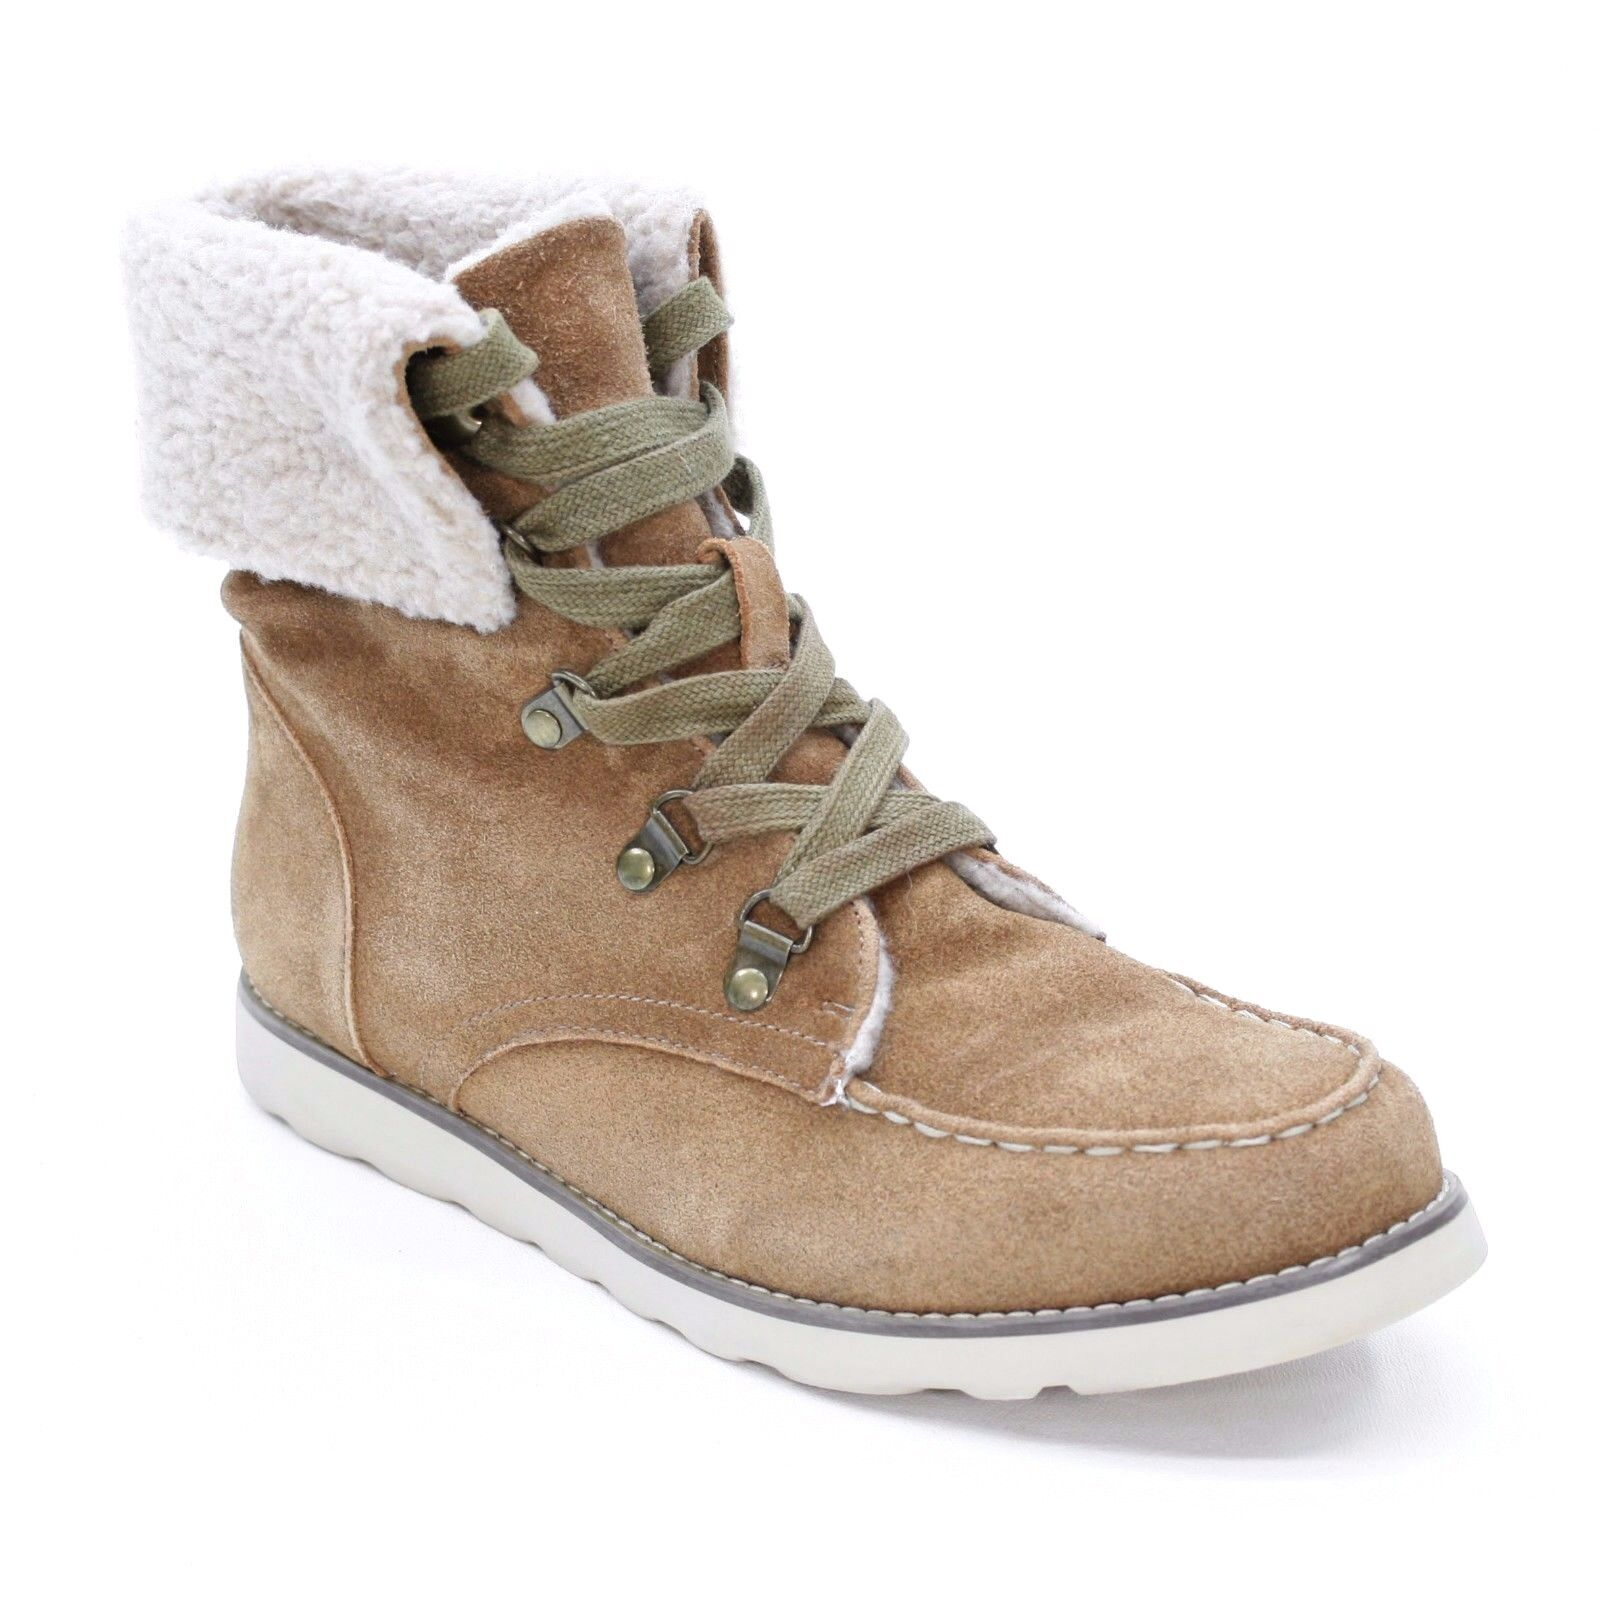 Aldo Ladies 40 B (about 9.5 US) Laue Moc Suede Leather Tan Ankle Fold Top Boots